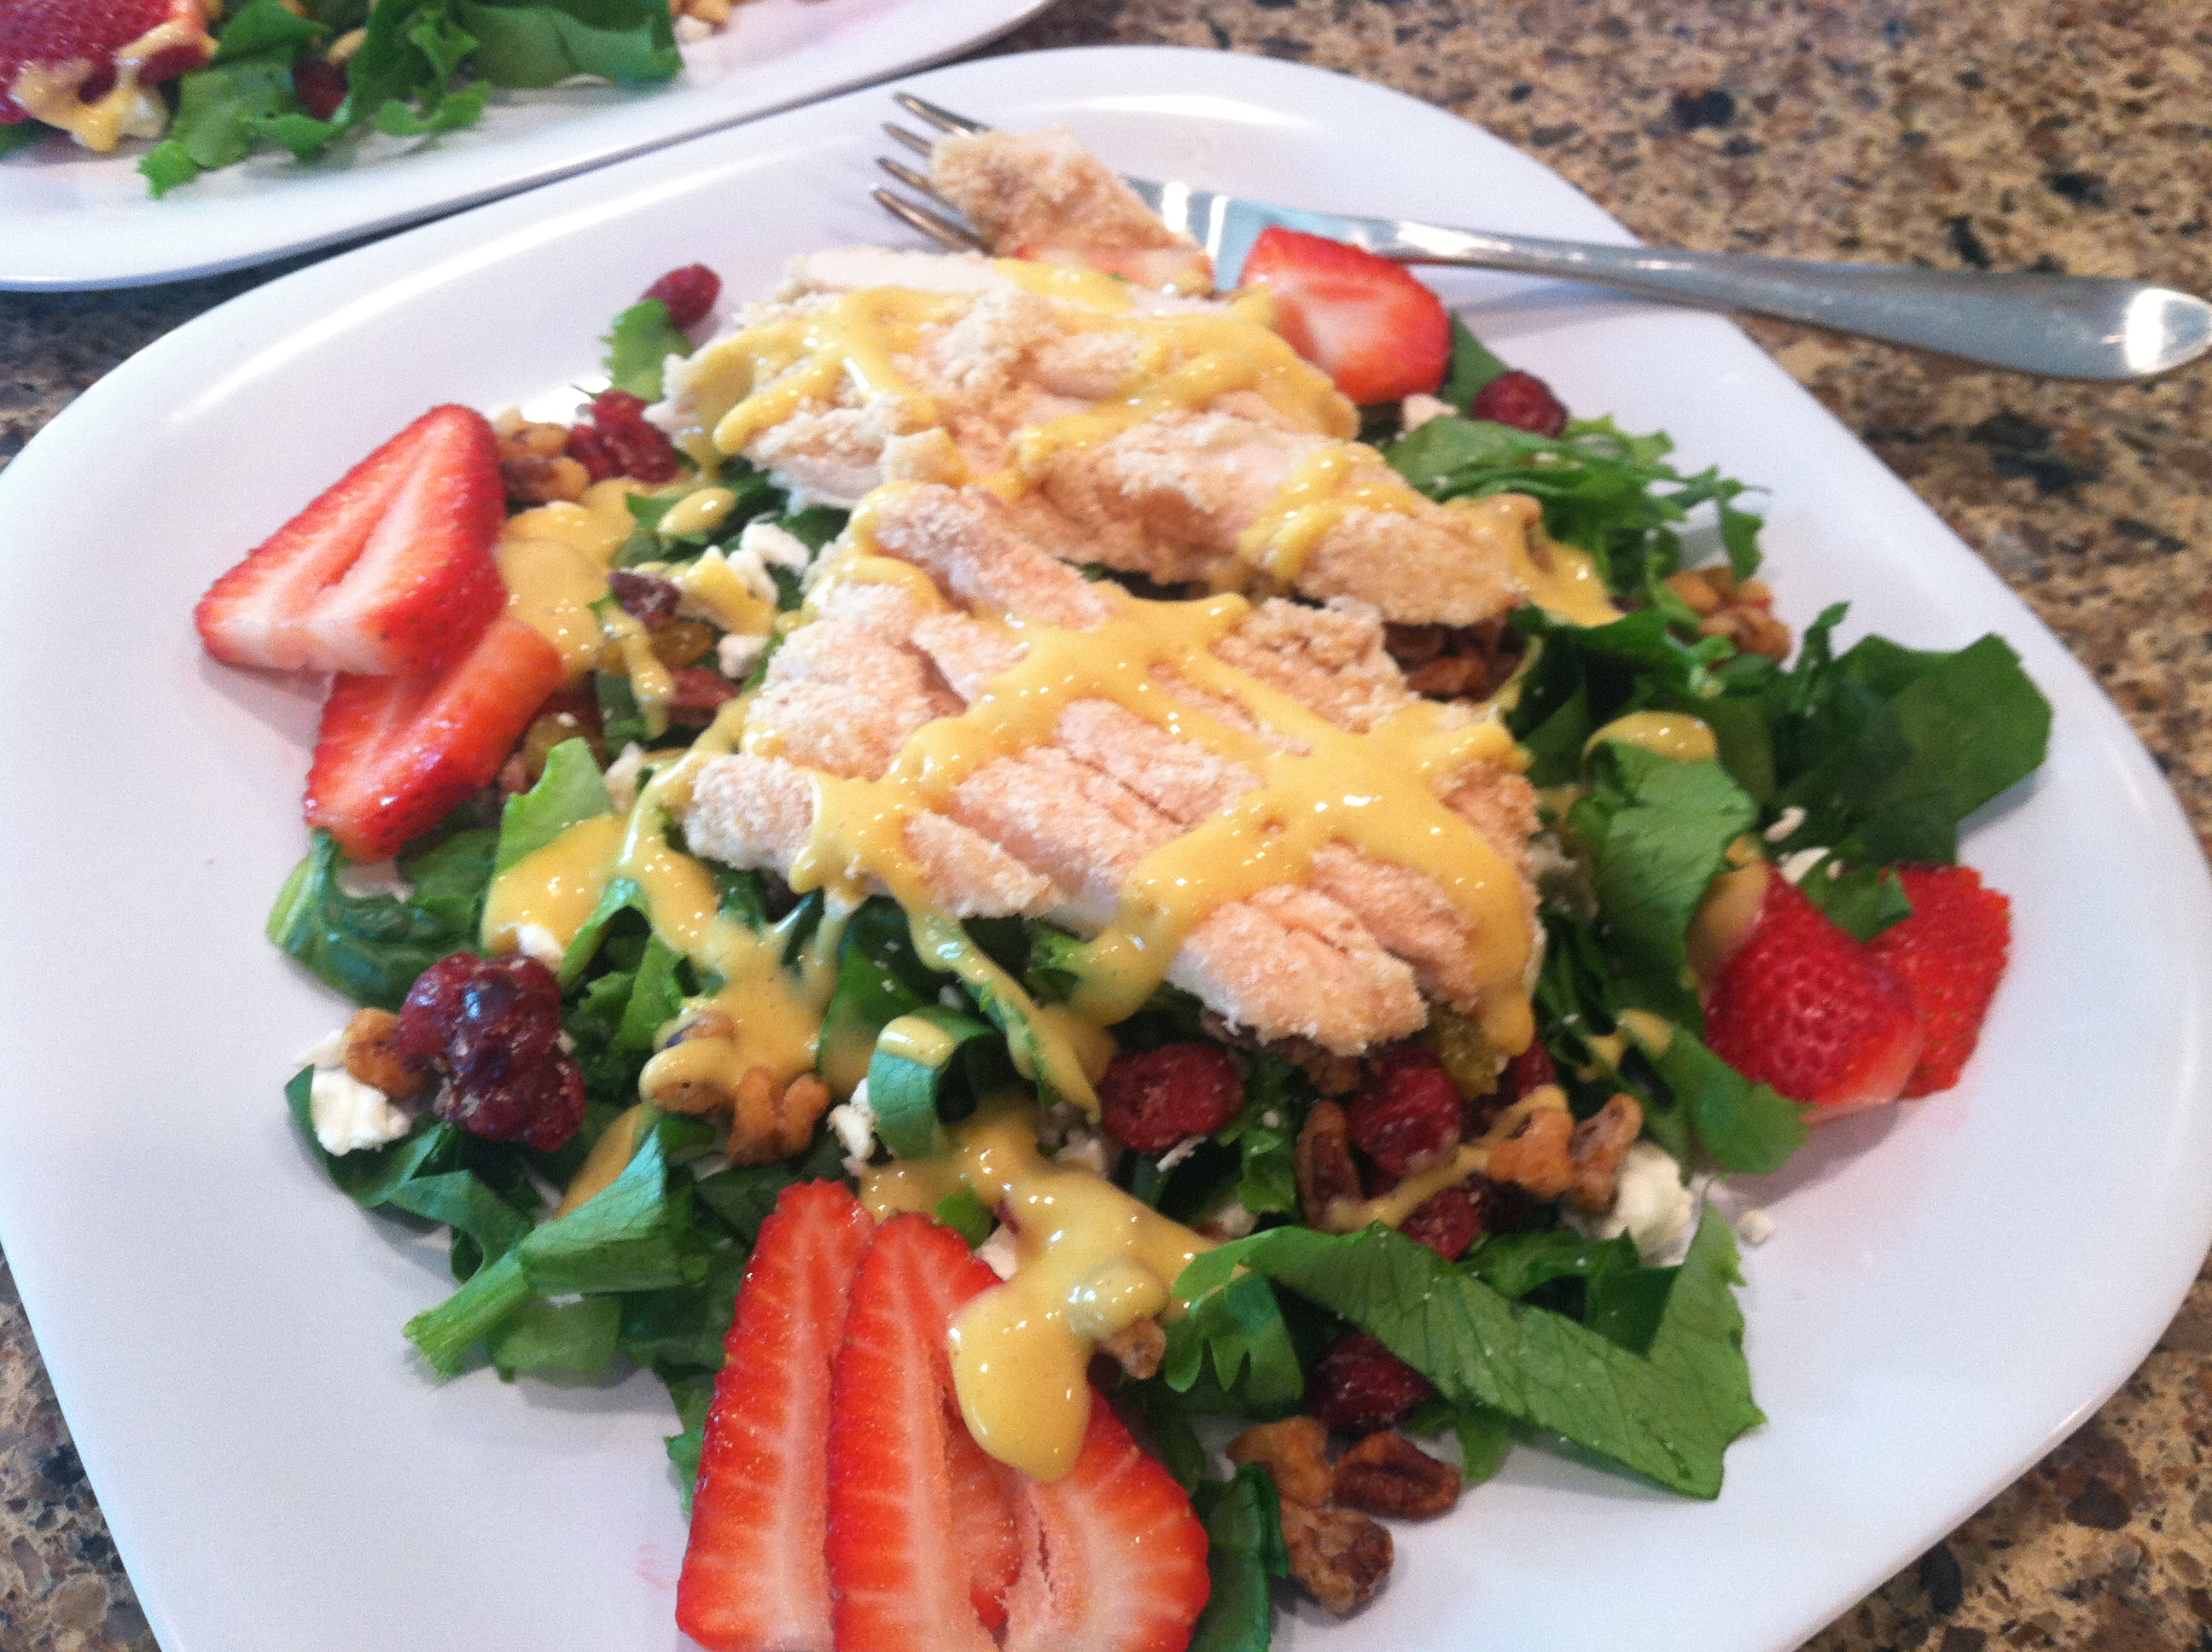 Spinach Salad with Chicken, Strawberries and Honey Mustard | Robin's ...